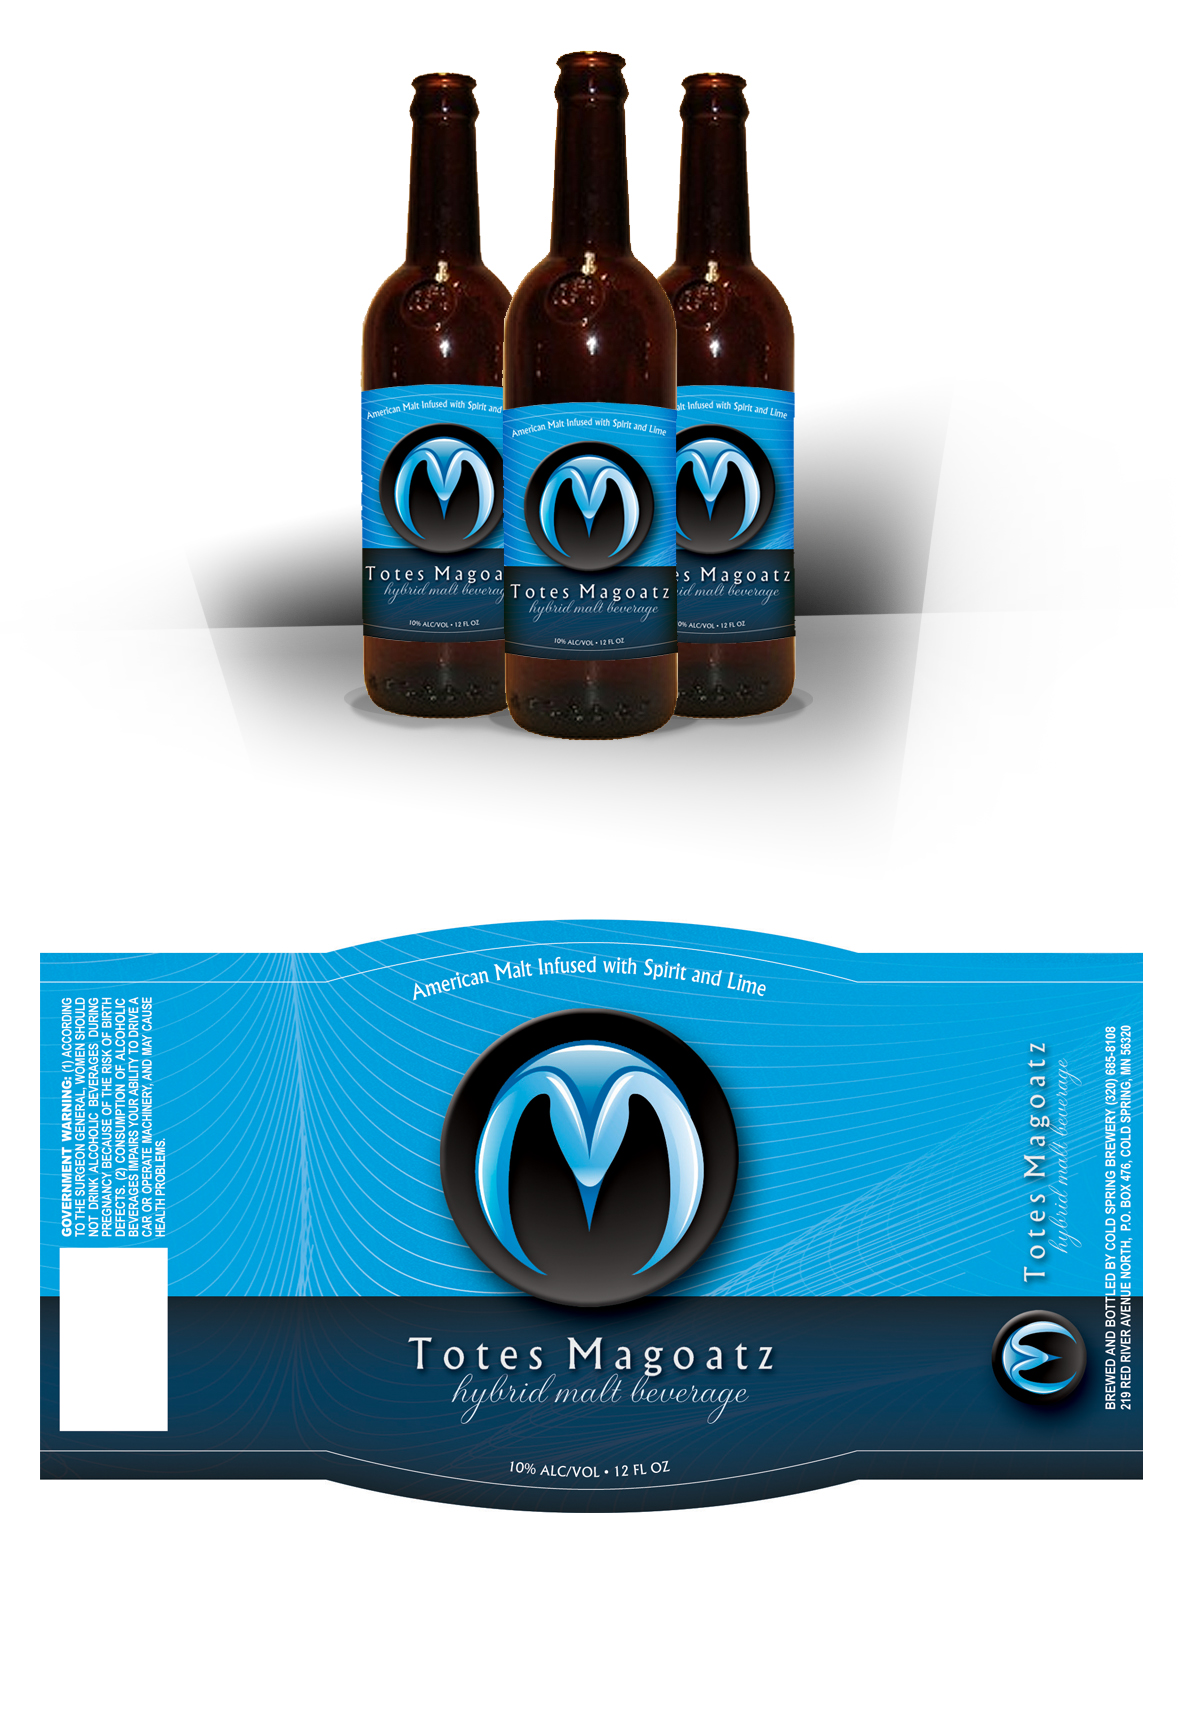 Totes Magoatz Label Design